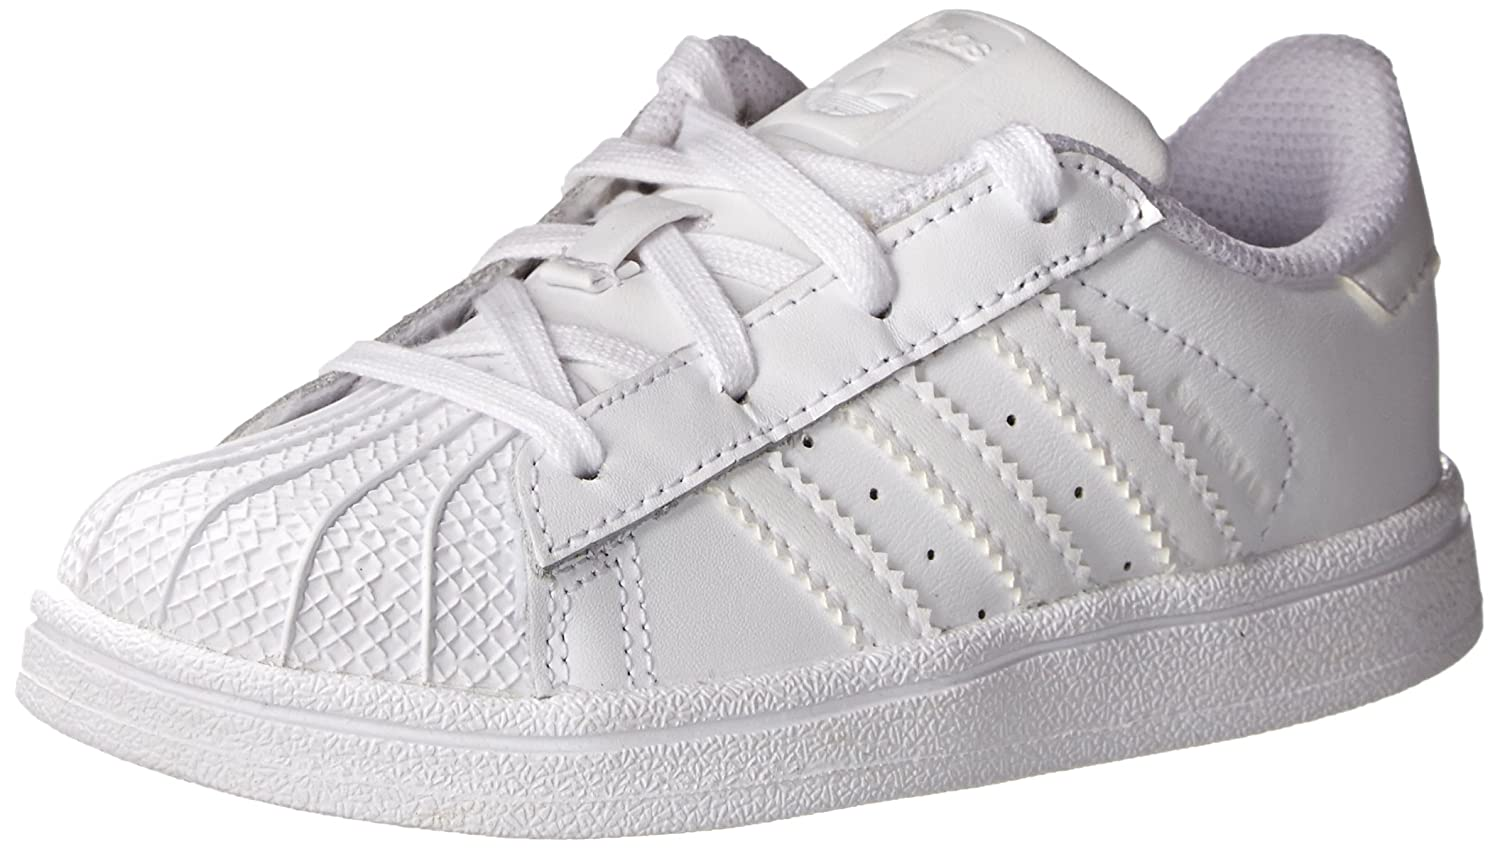 Great Originals Adidas Superstar Foundation Shoes B27136 | White